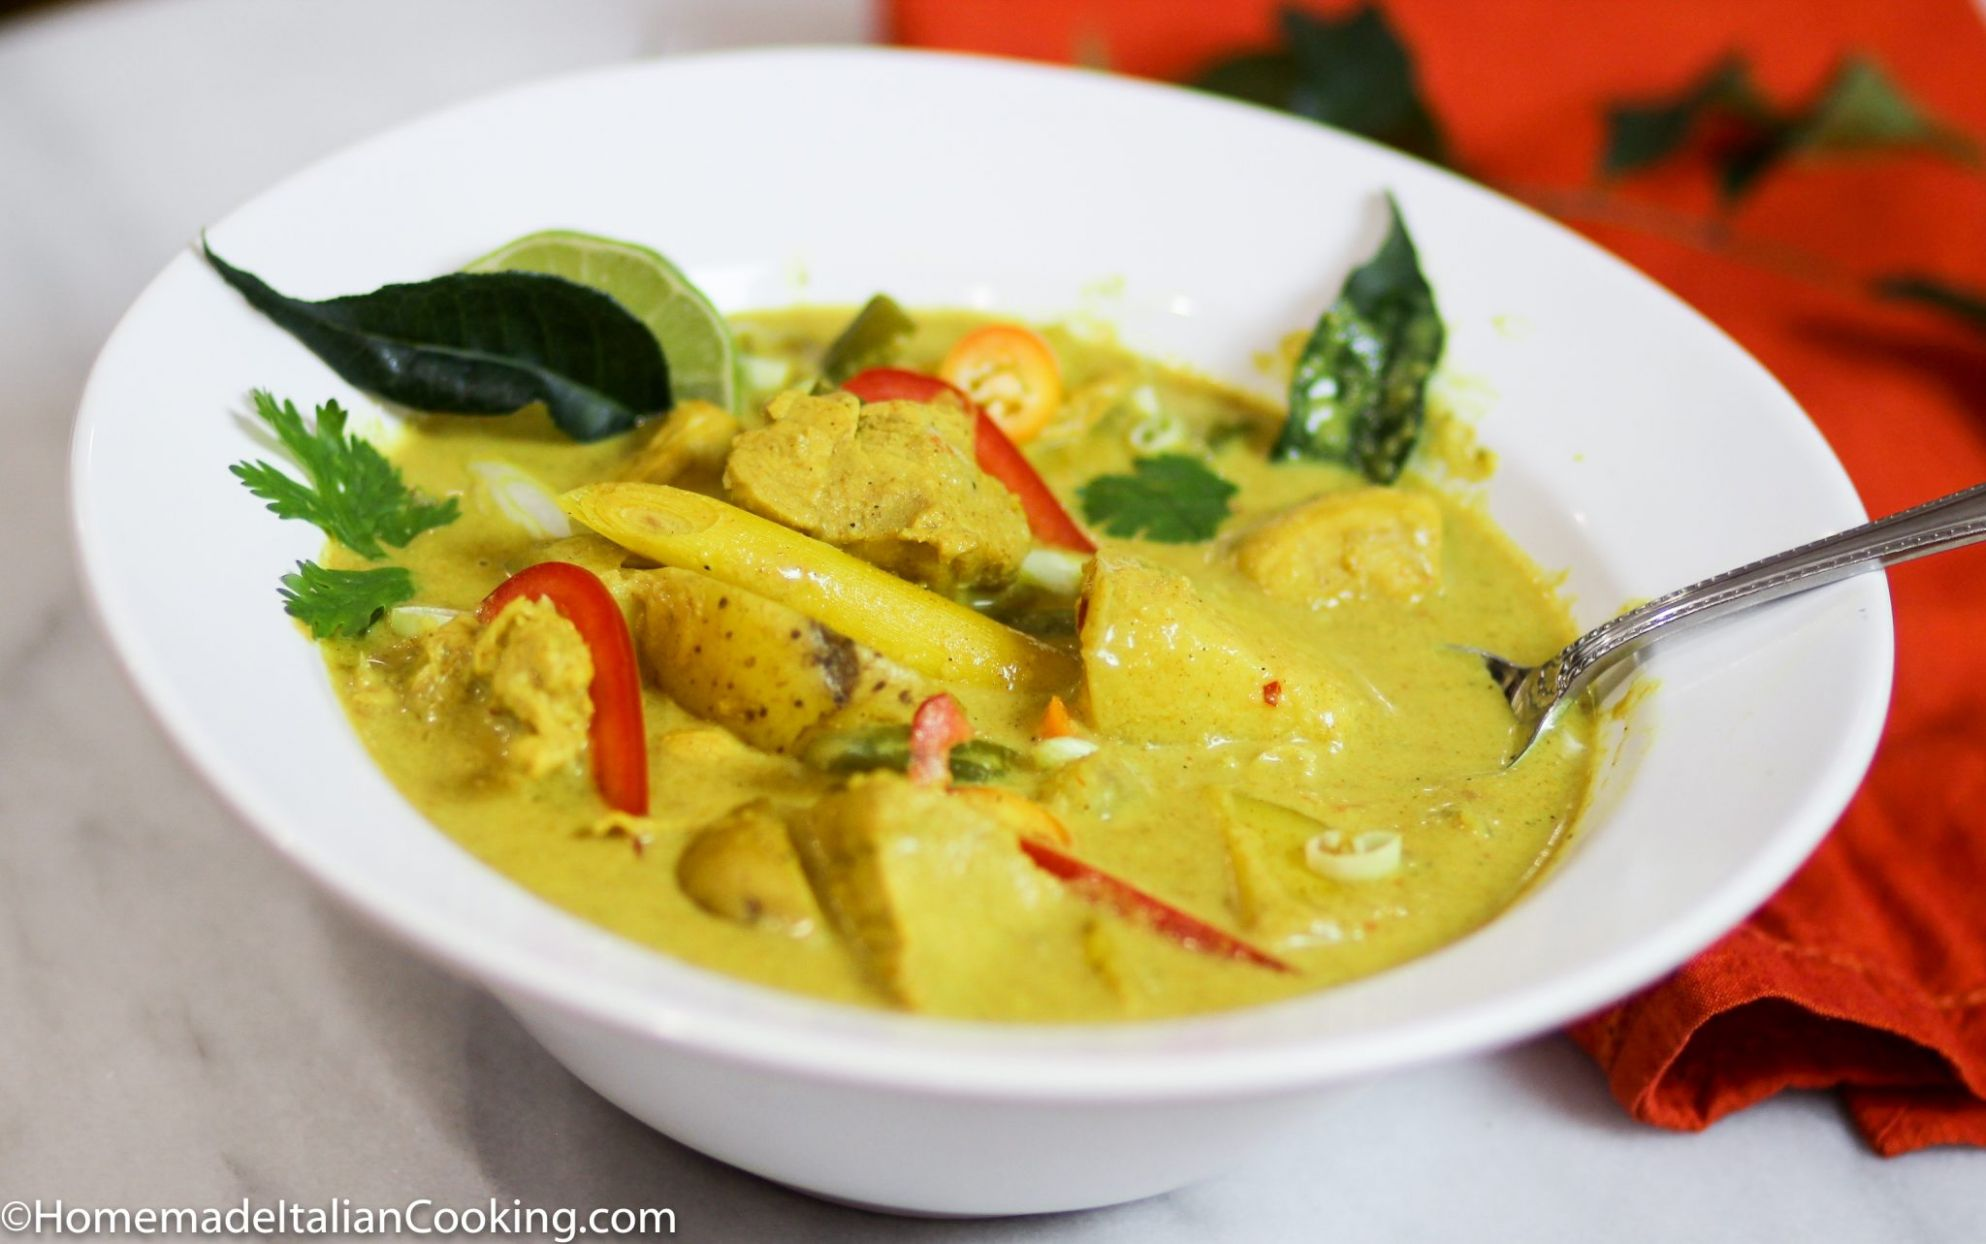 Singapore Grand Prix: Yellow Curry with Chicken and Potatoes